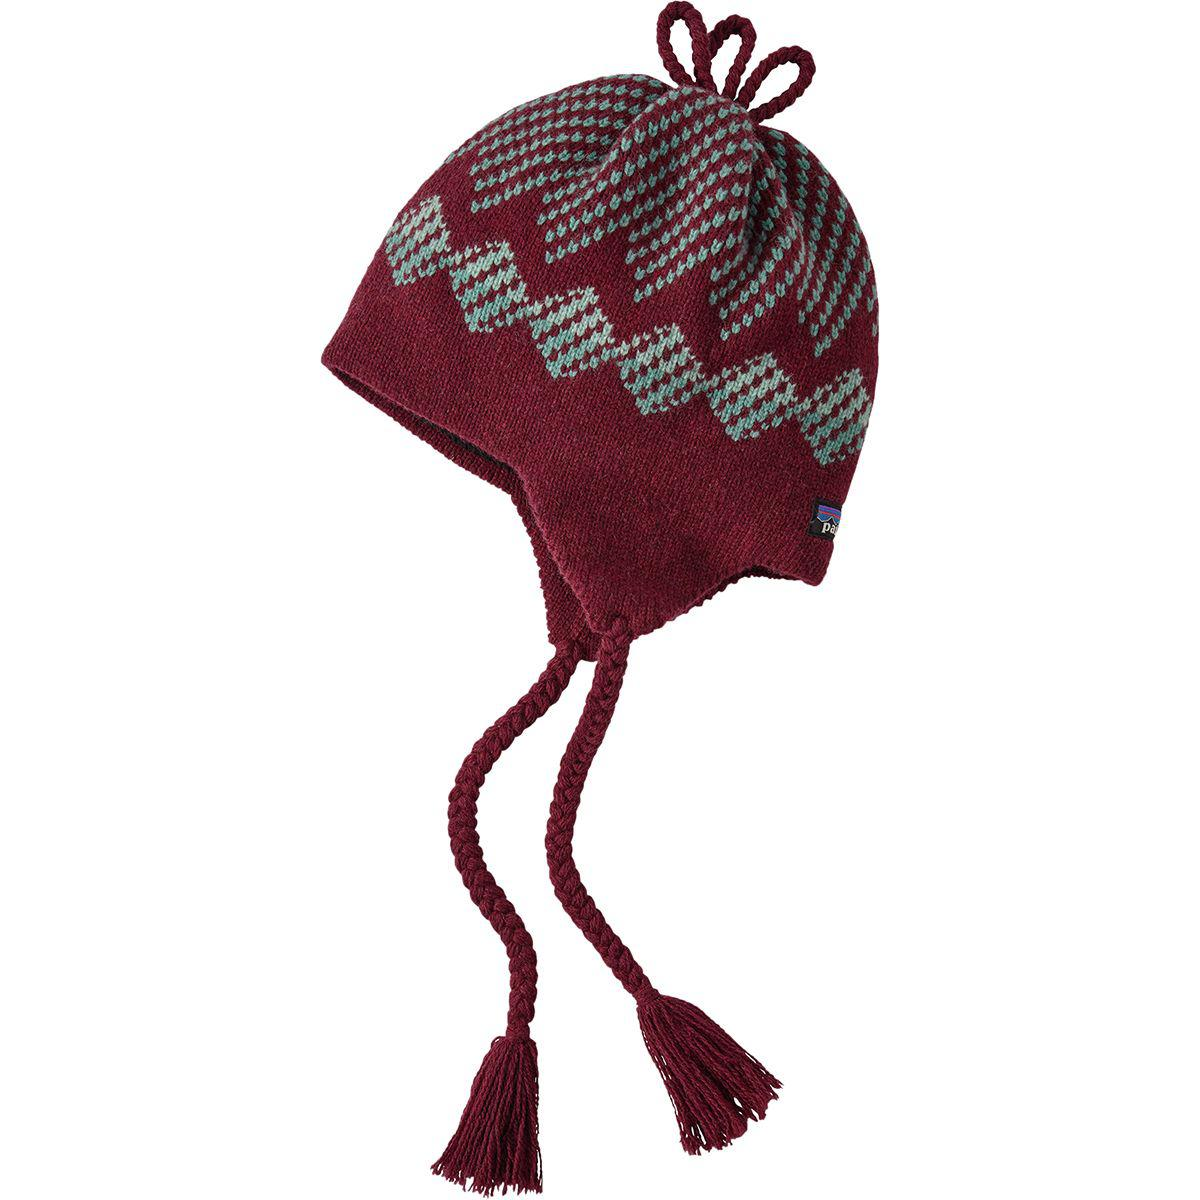 decf7e21ed8 Lyst - Patagonia Ear Flap Hat in Red for Men